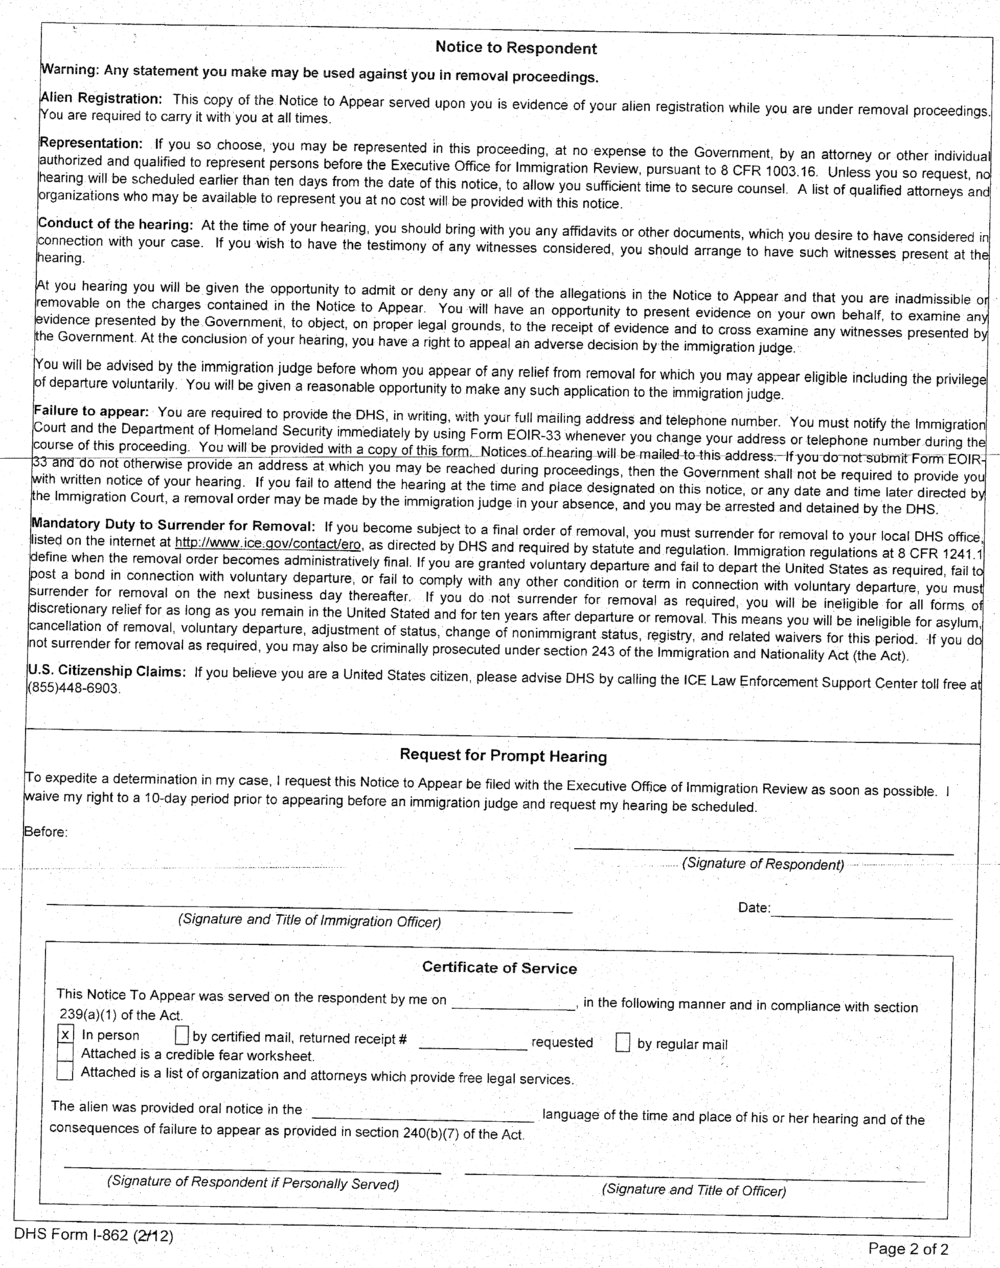 Notice to Appear (NTA) in Immigration Court - Section 6